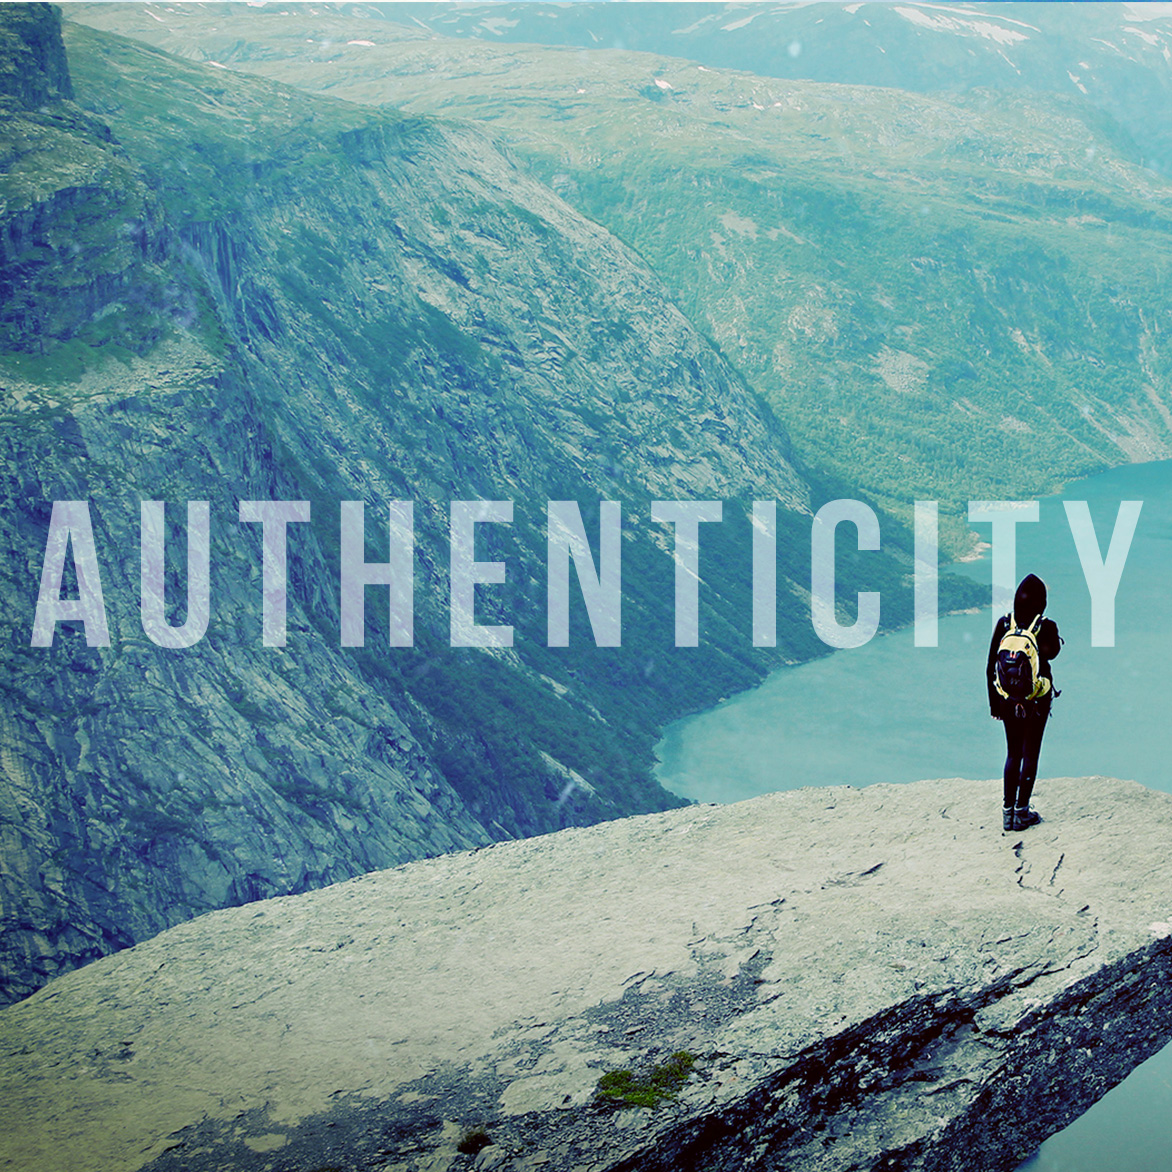 Authenticity matters